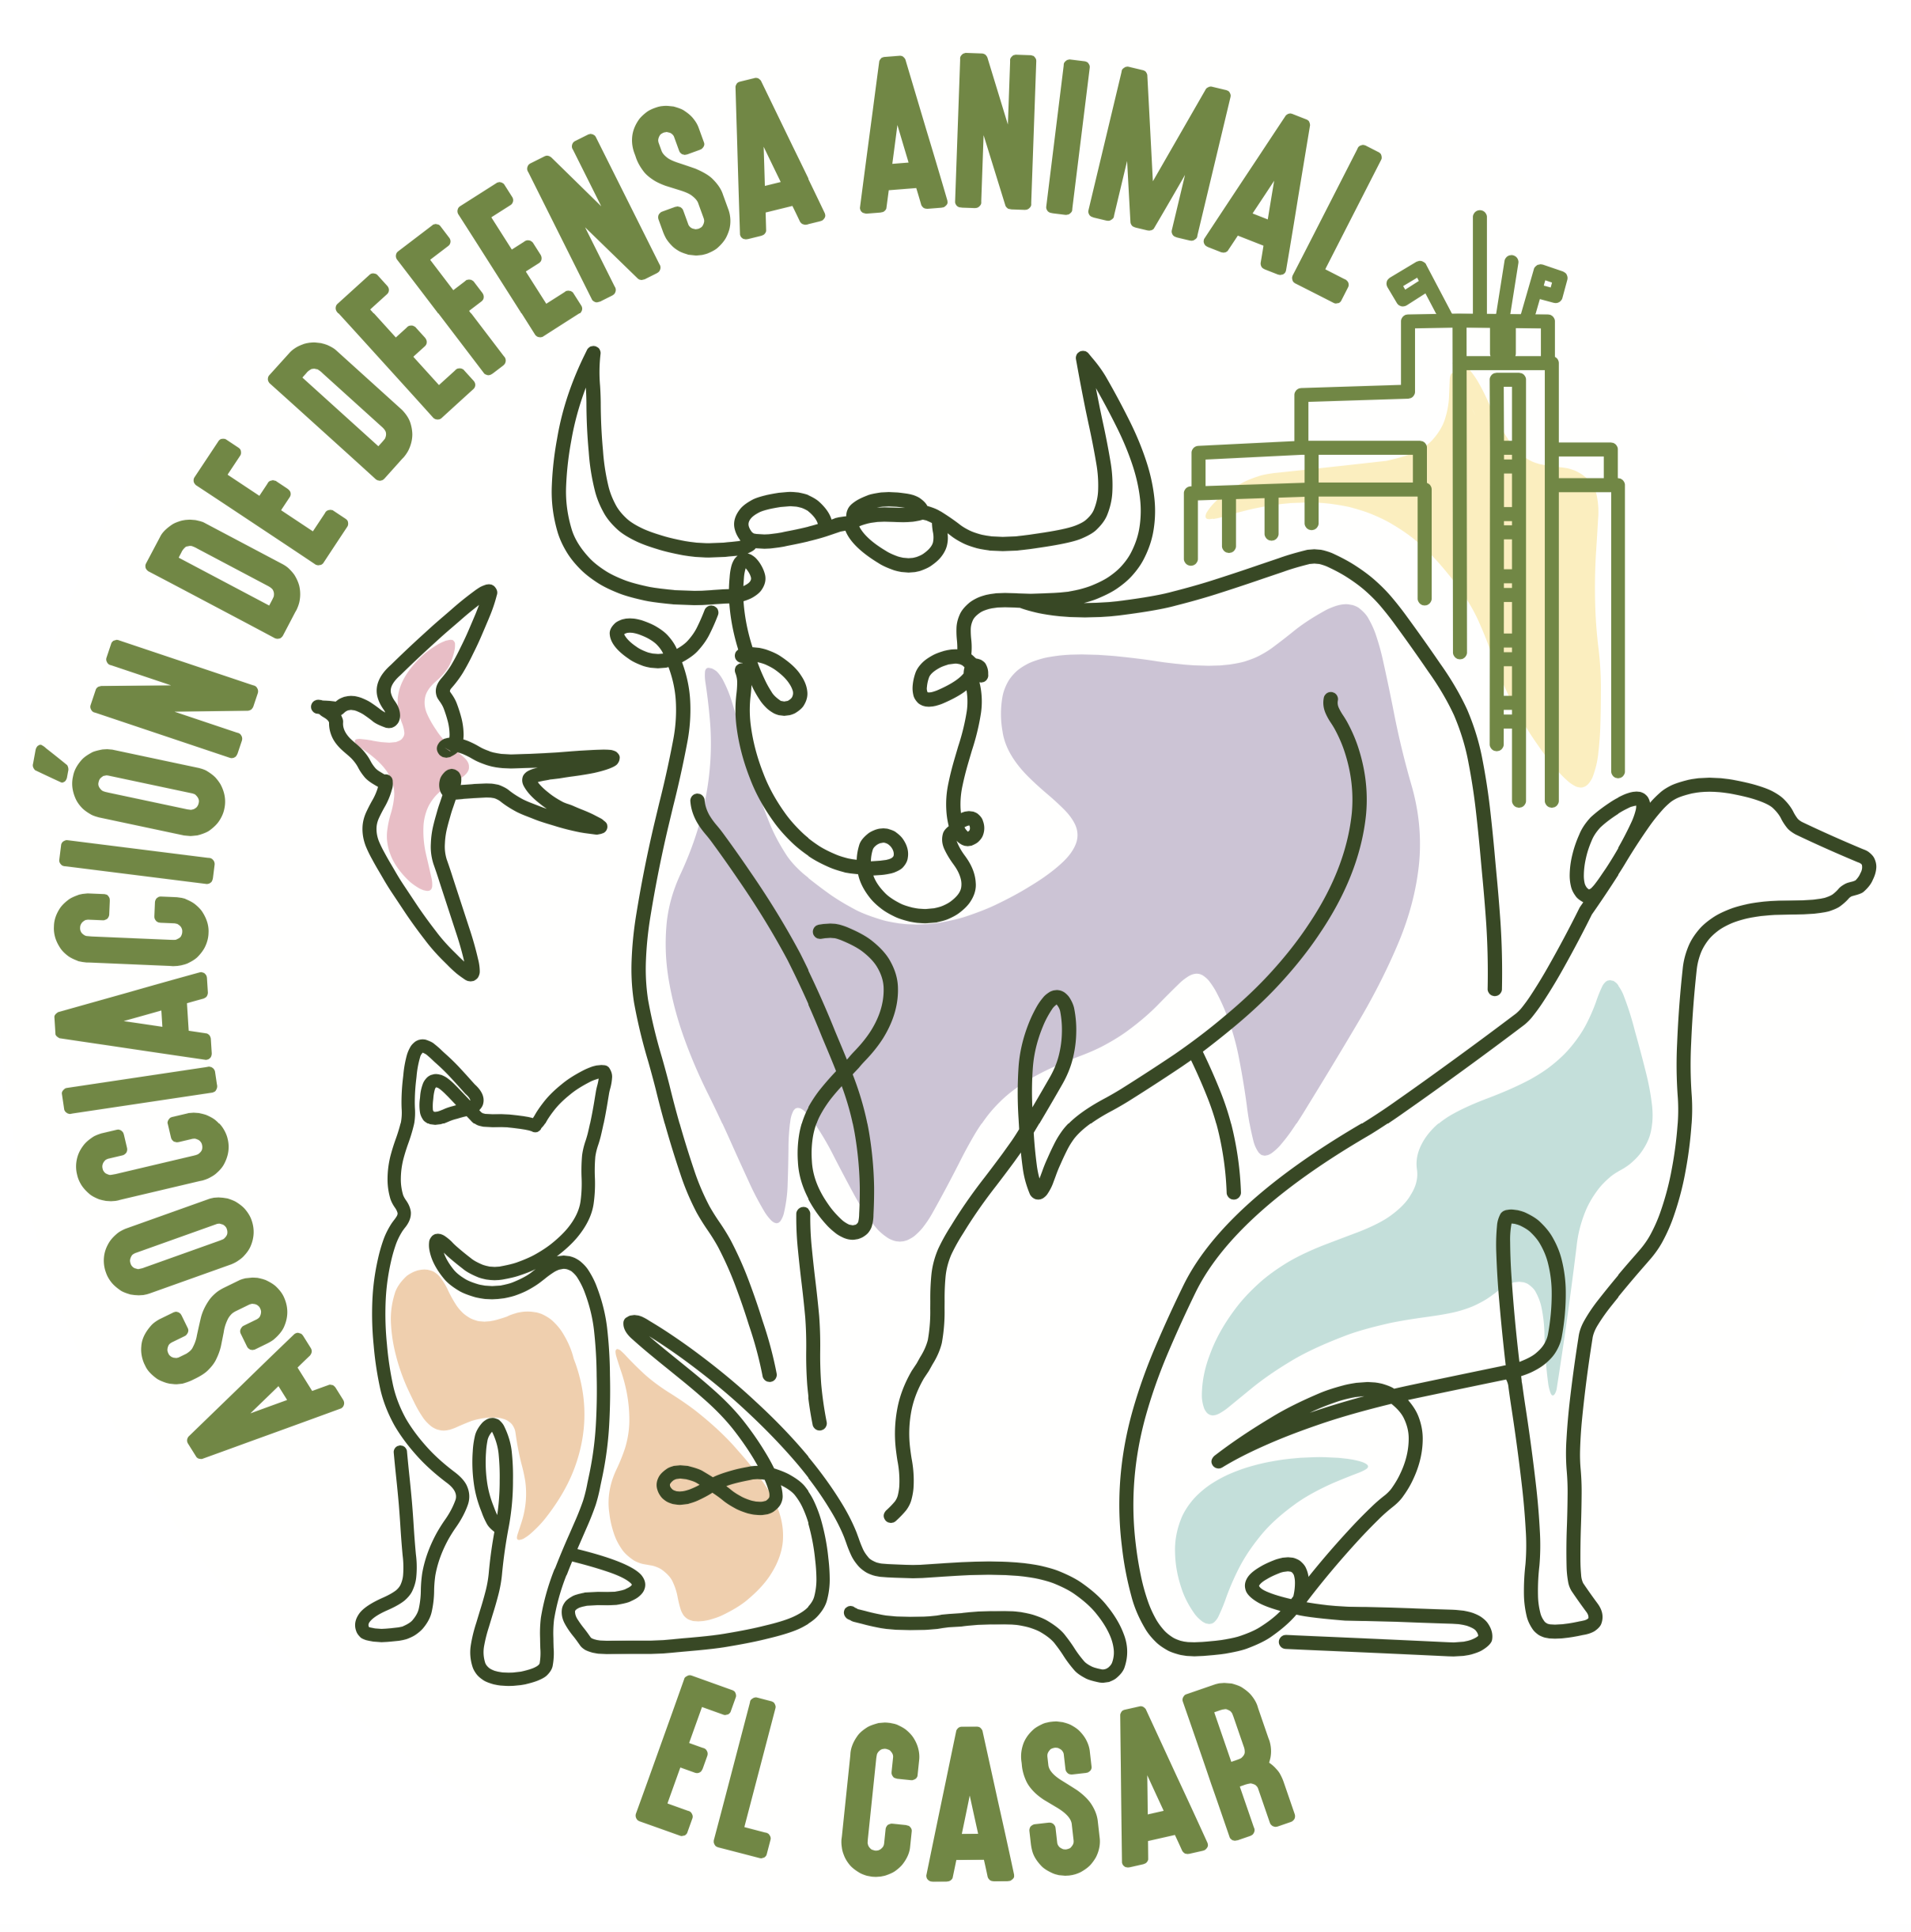 Defensa animal el Casar